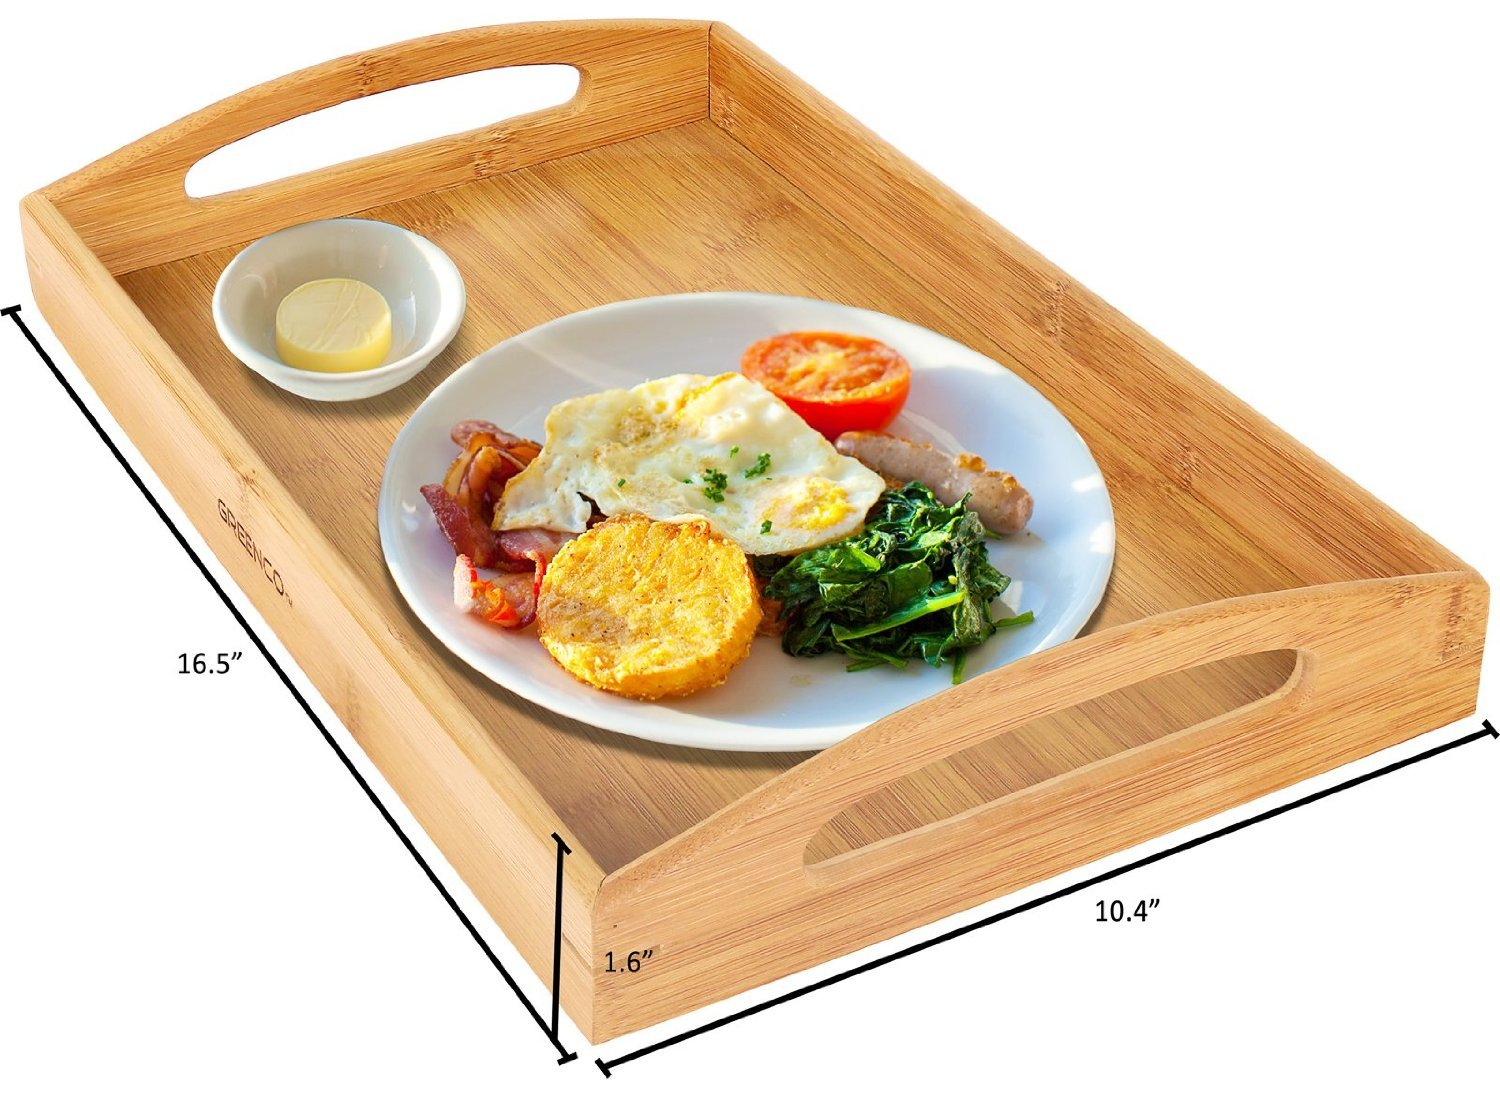 Greenco Rectangle Bamboo Butler Serving Tray With Handles by Greenco (Image #3)